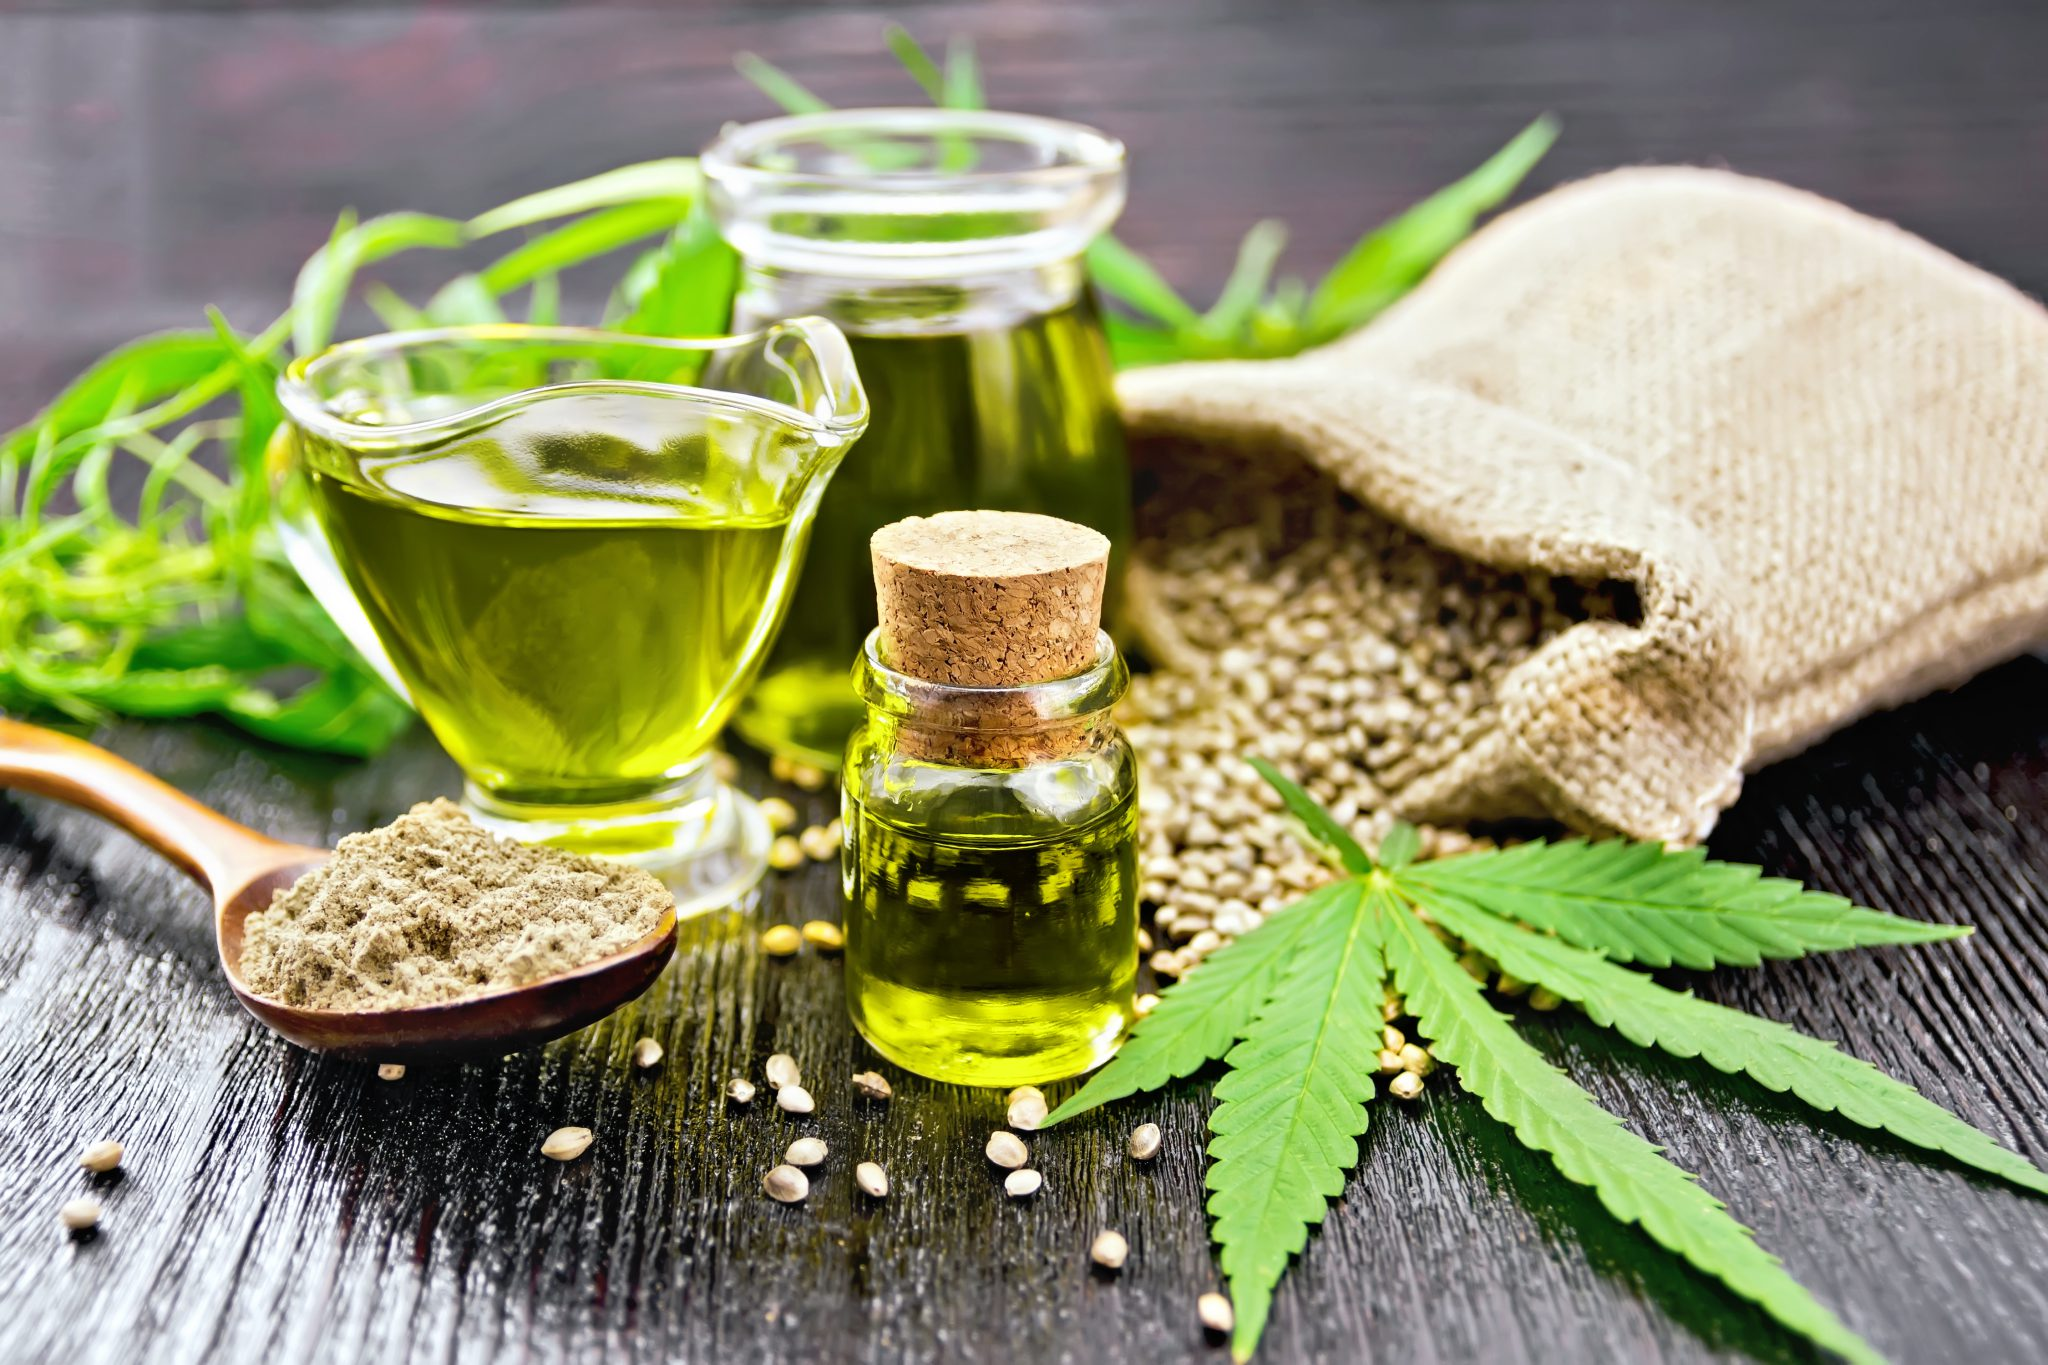 Cannabis Confusion: The Proliferation Of Cbd Products Can Be Misleading.